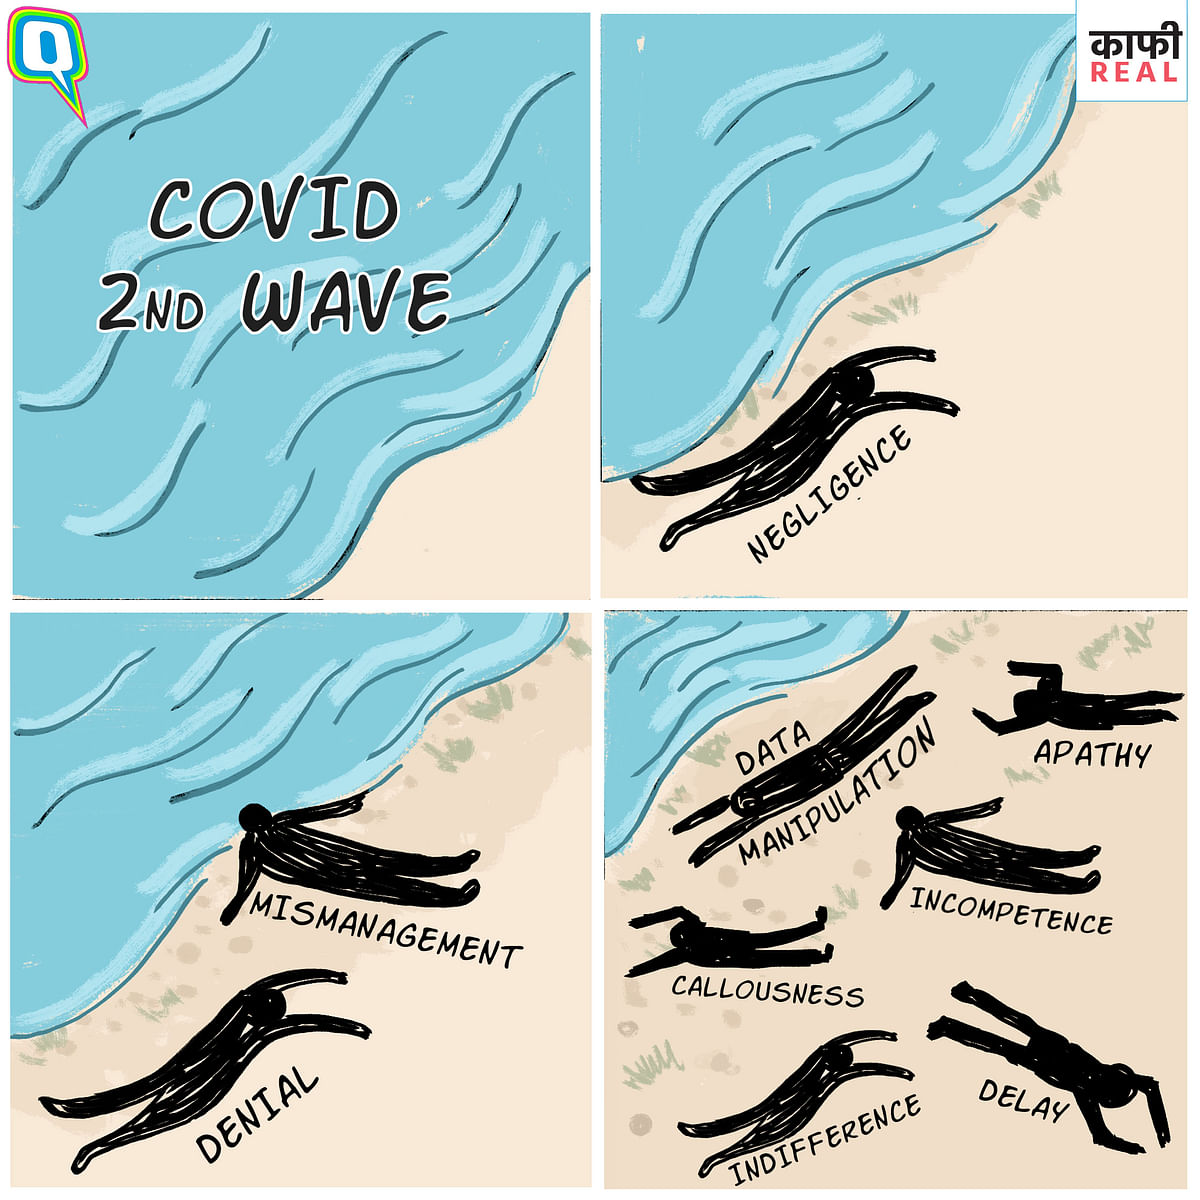 Apathy, Indifference to Deaths Amid COVID 2nd Wave is 'Kaafi Real'